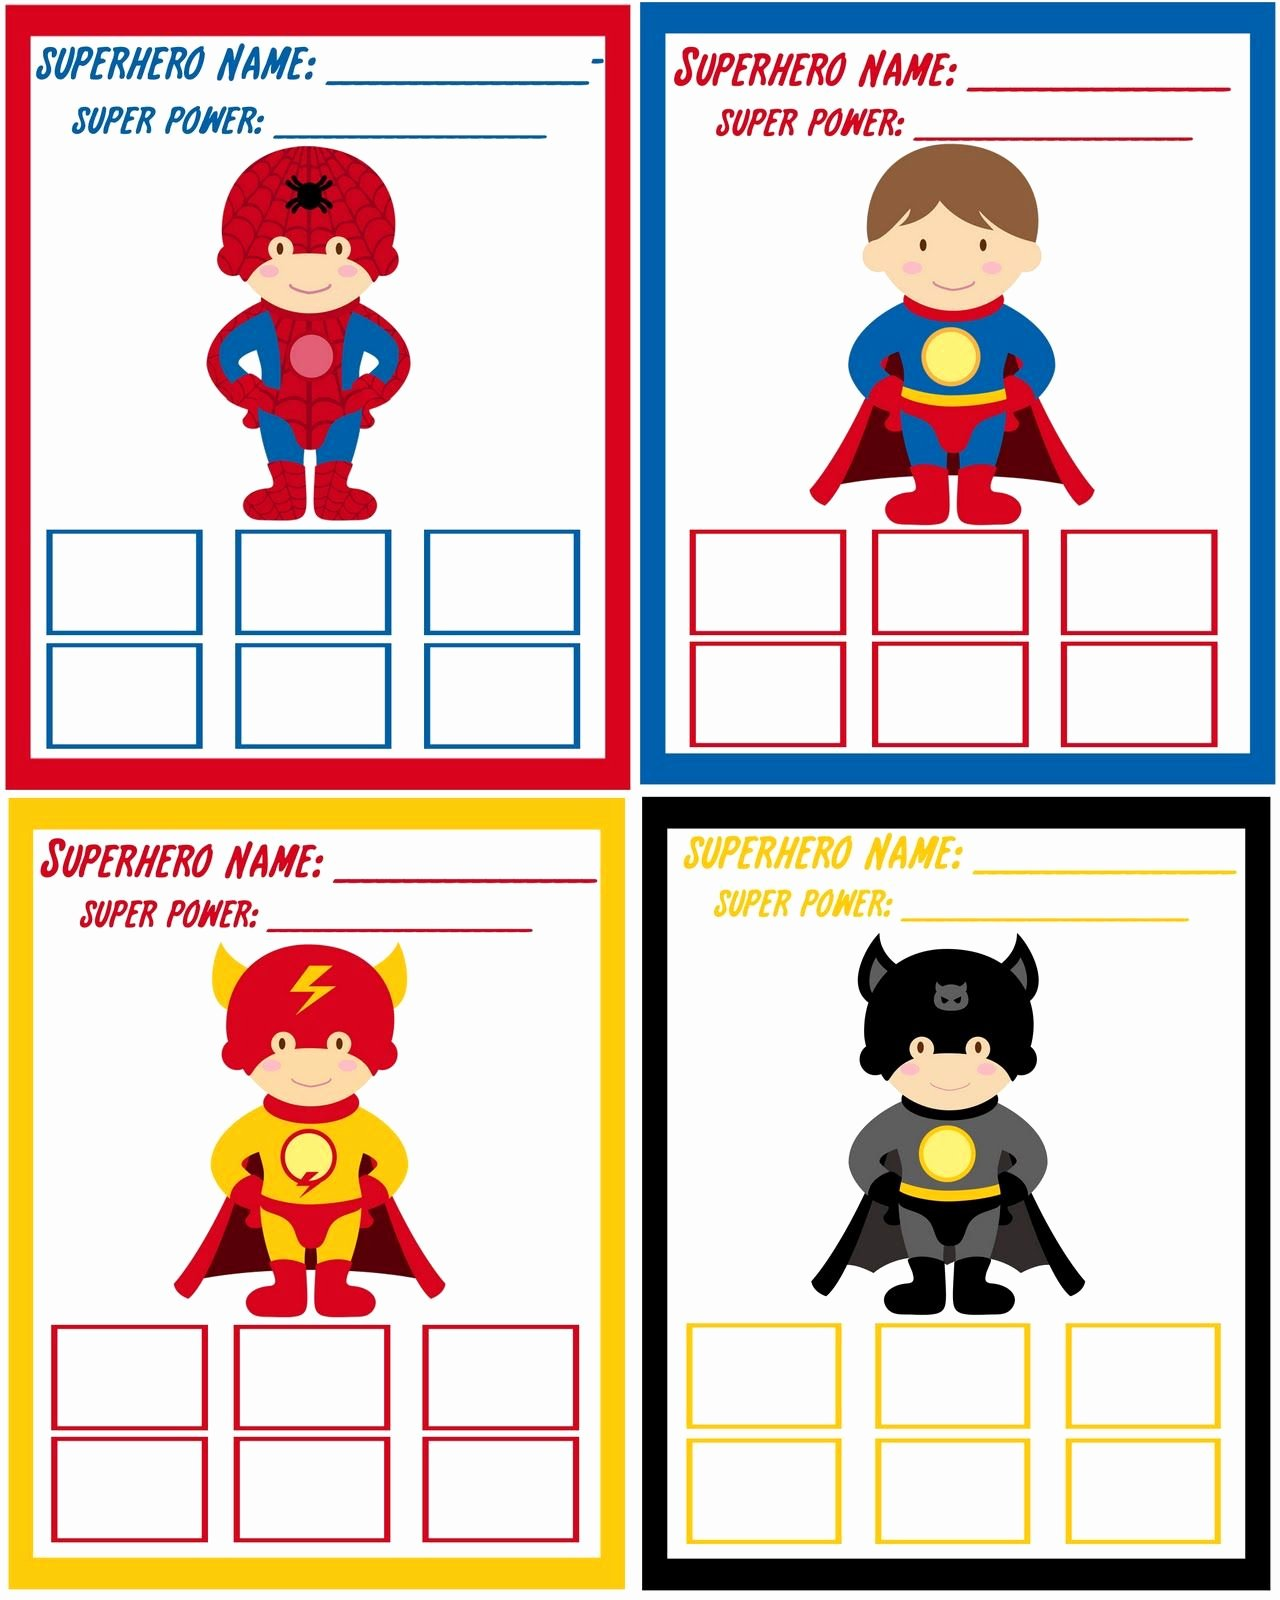 My Hero Award Template Best Of Super Hero Training Academy Cards